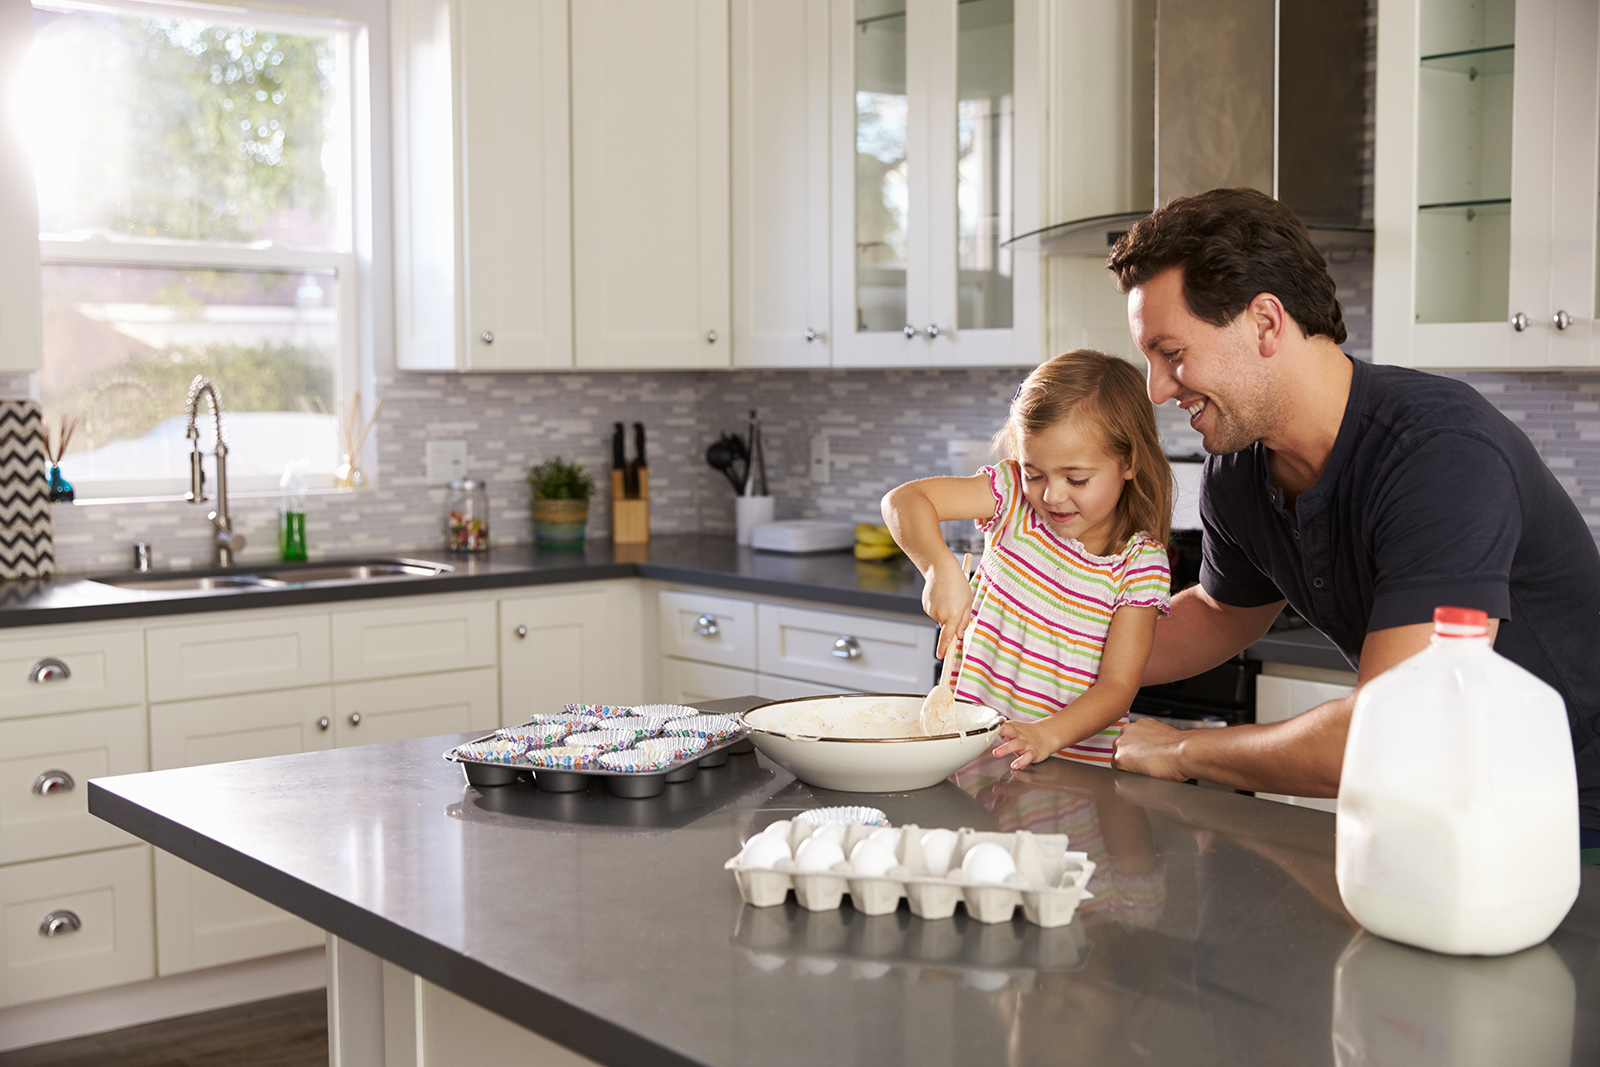 Child and parent making cupcakes on a kitchen counter